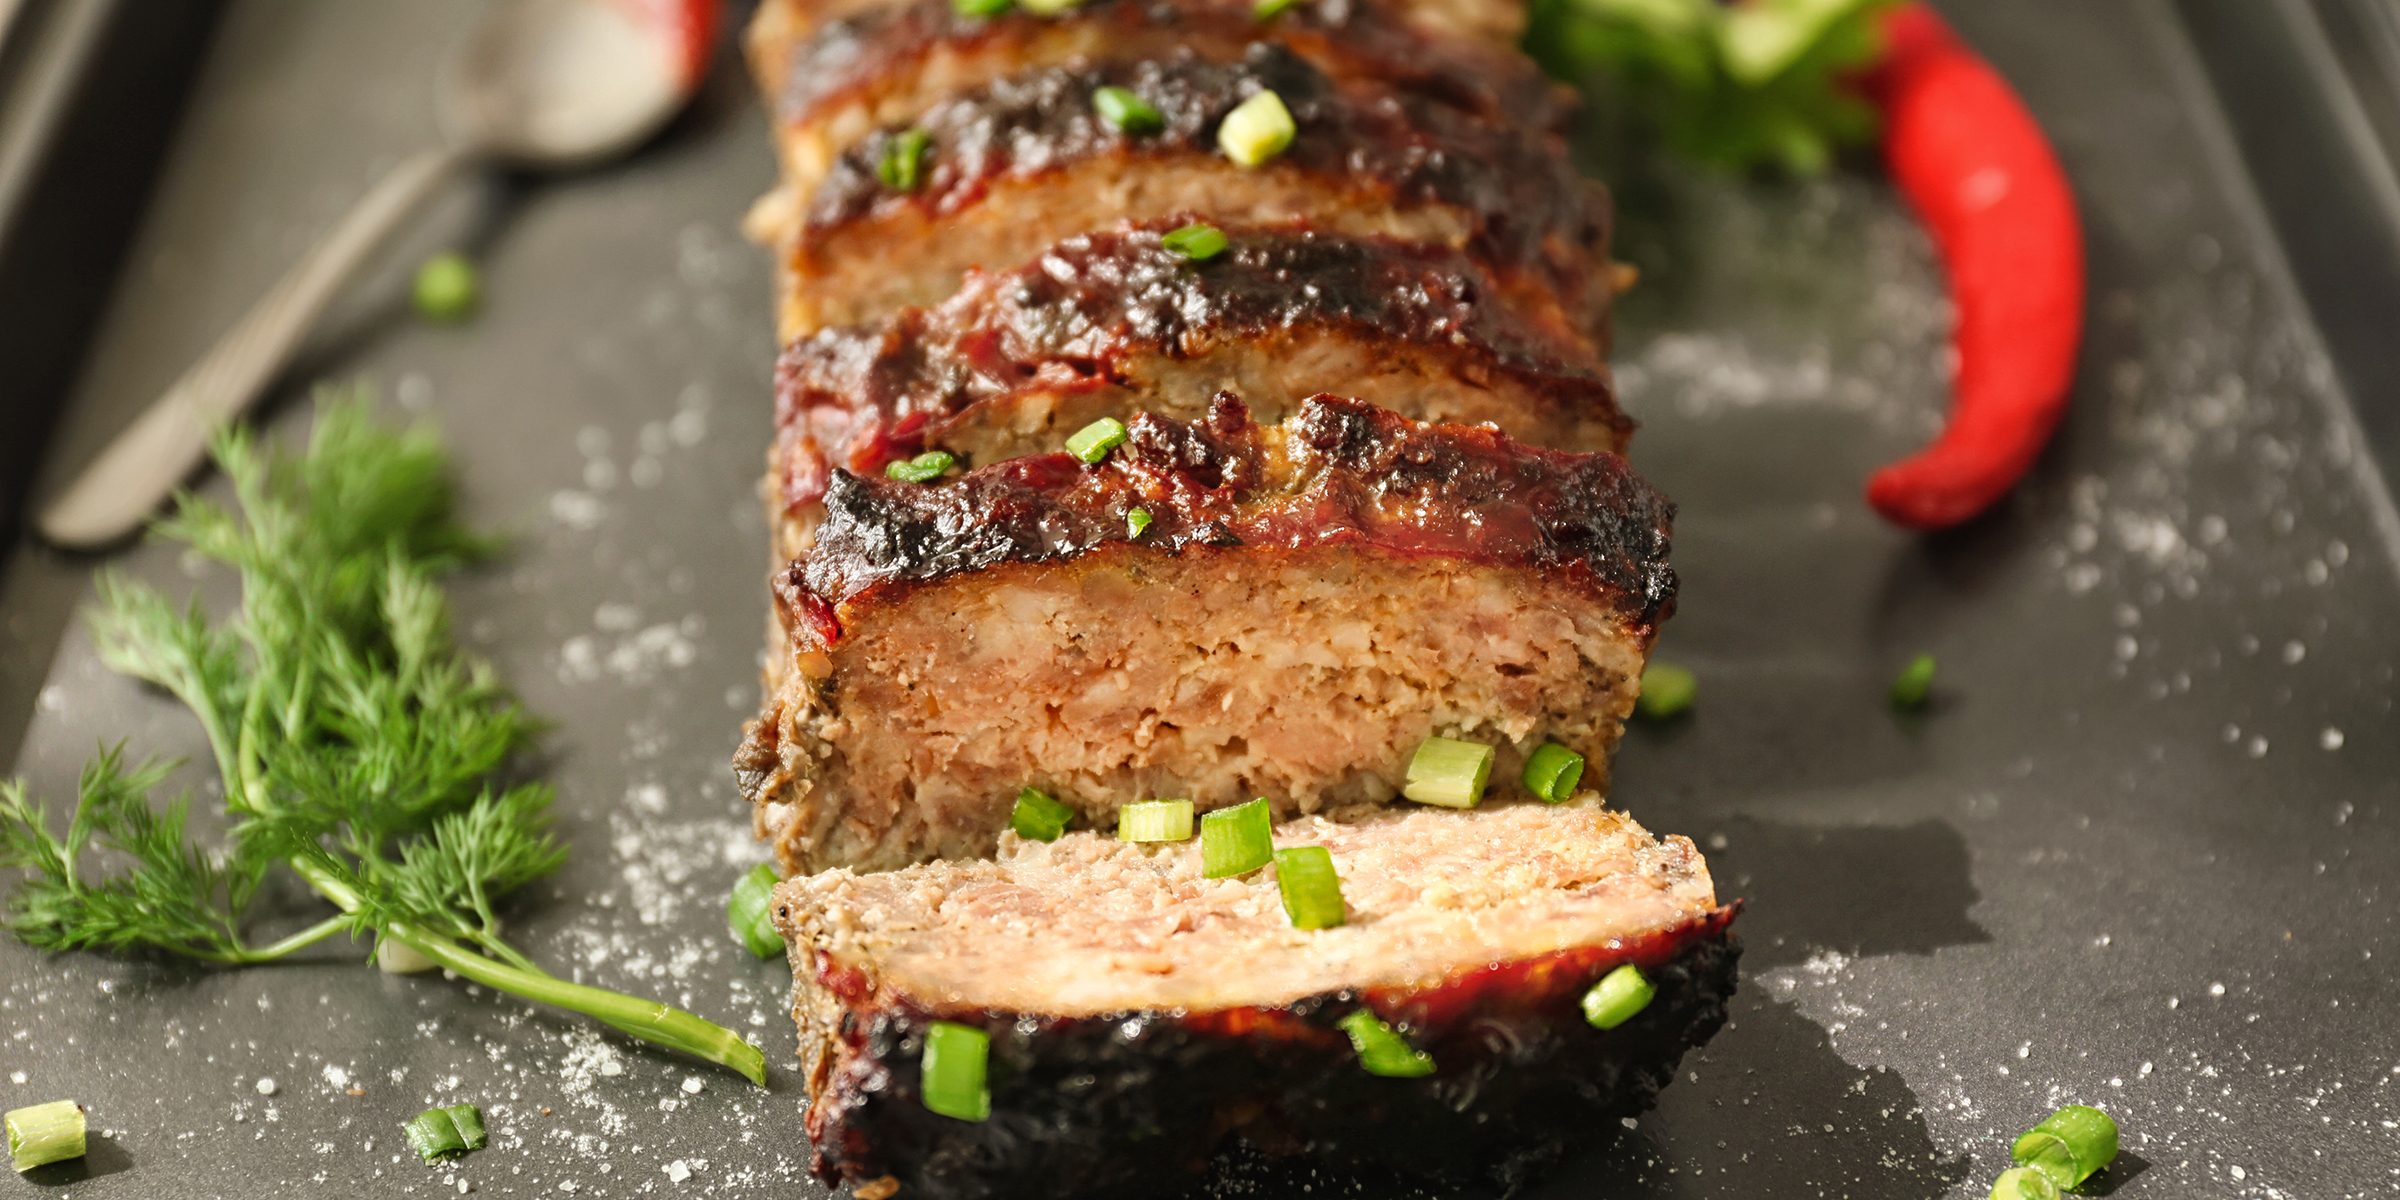 How To Make Meatloaf Chefs Share Tips And The Best Meatloaf Recipe